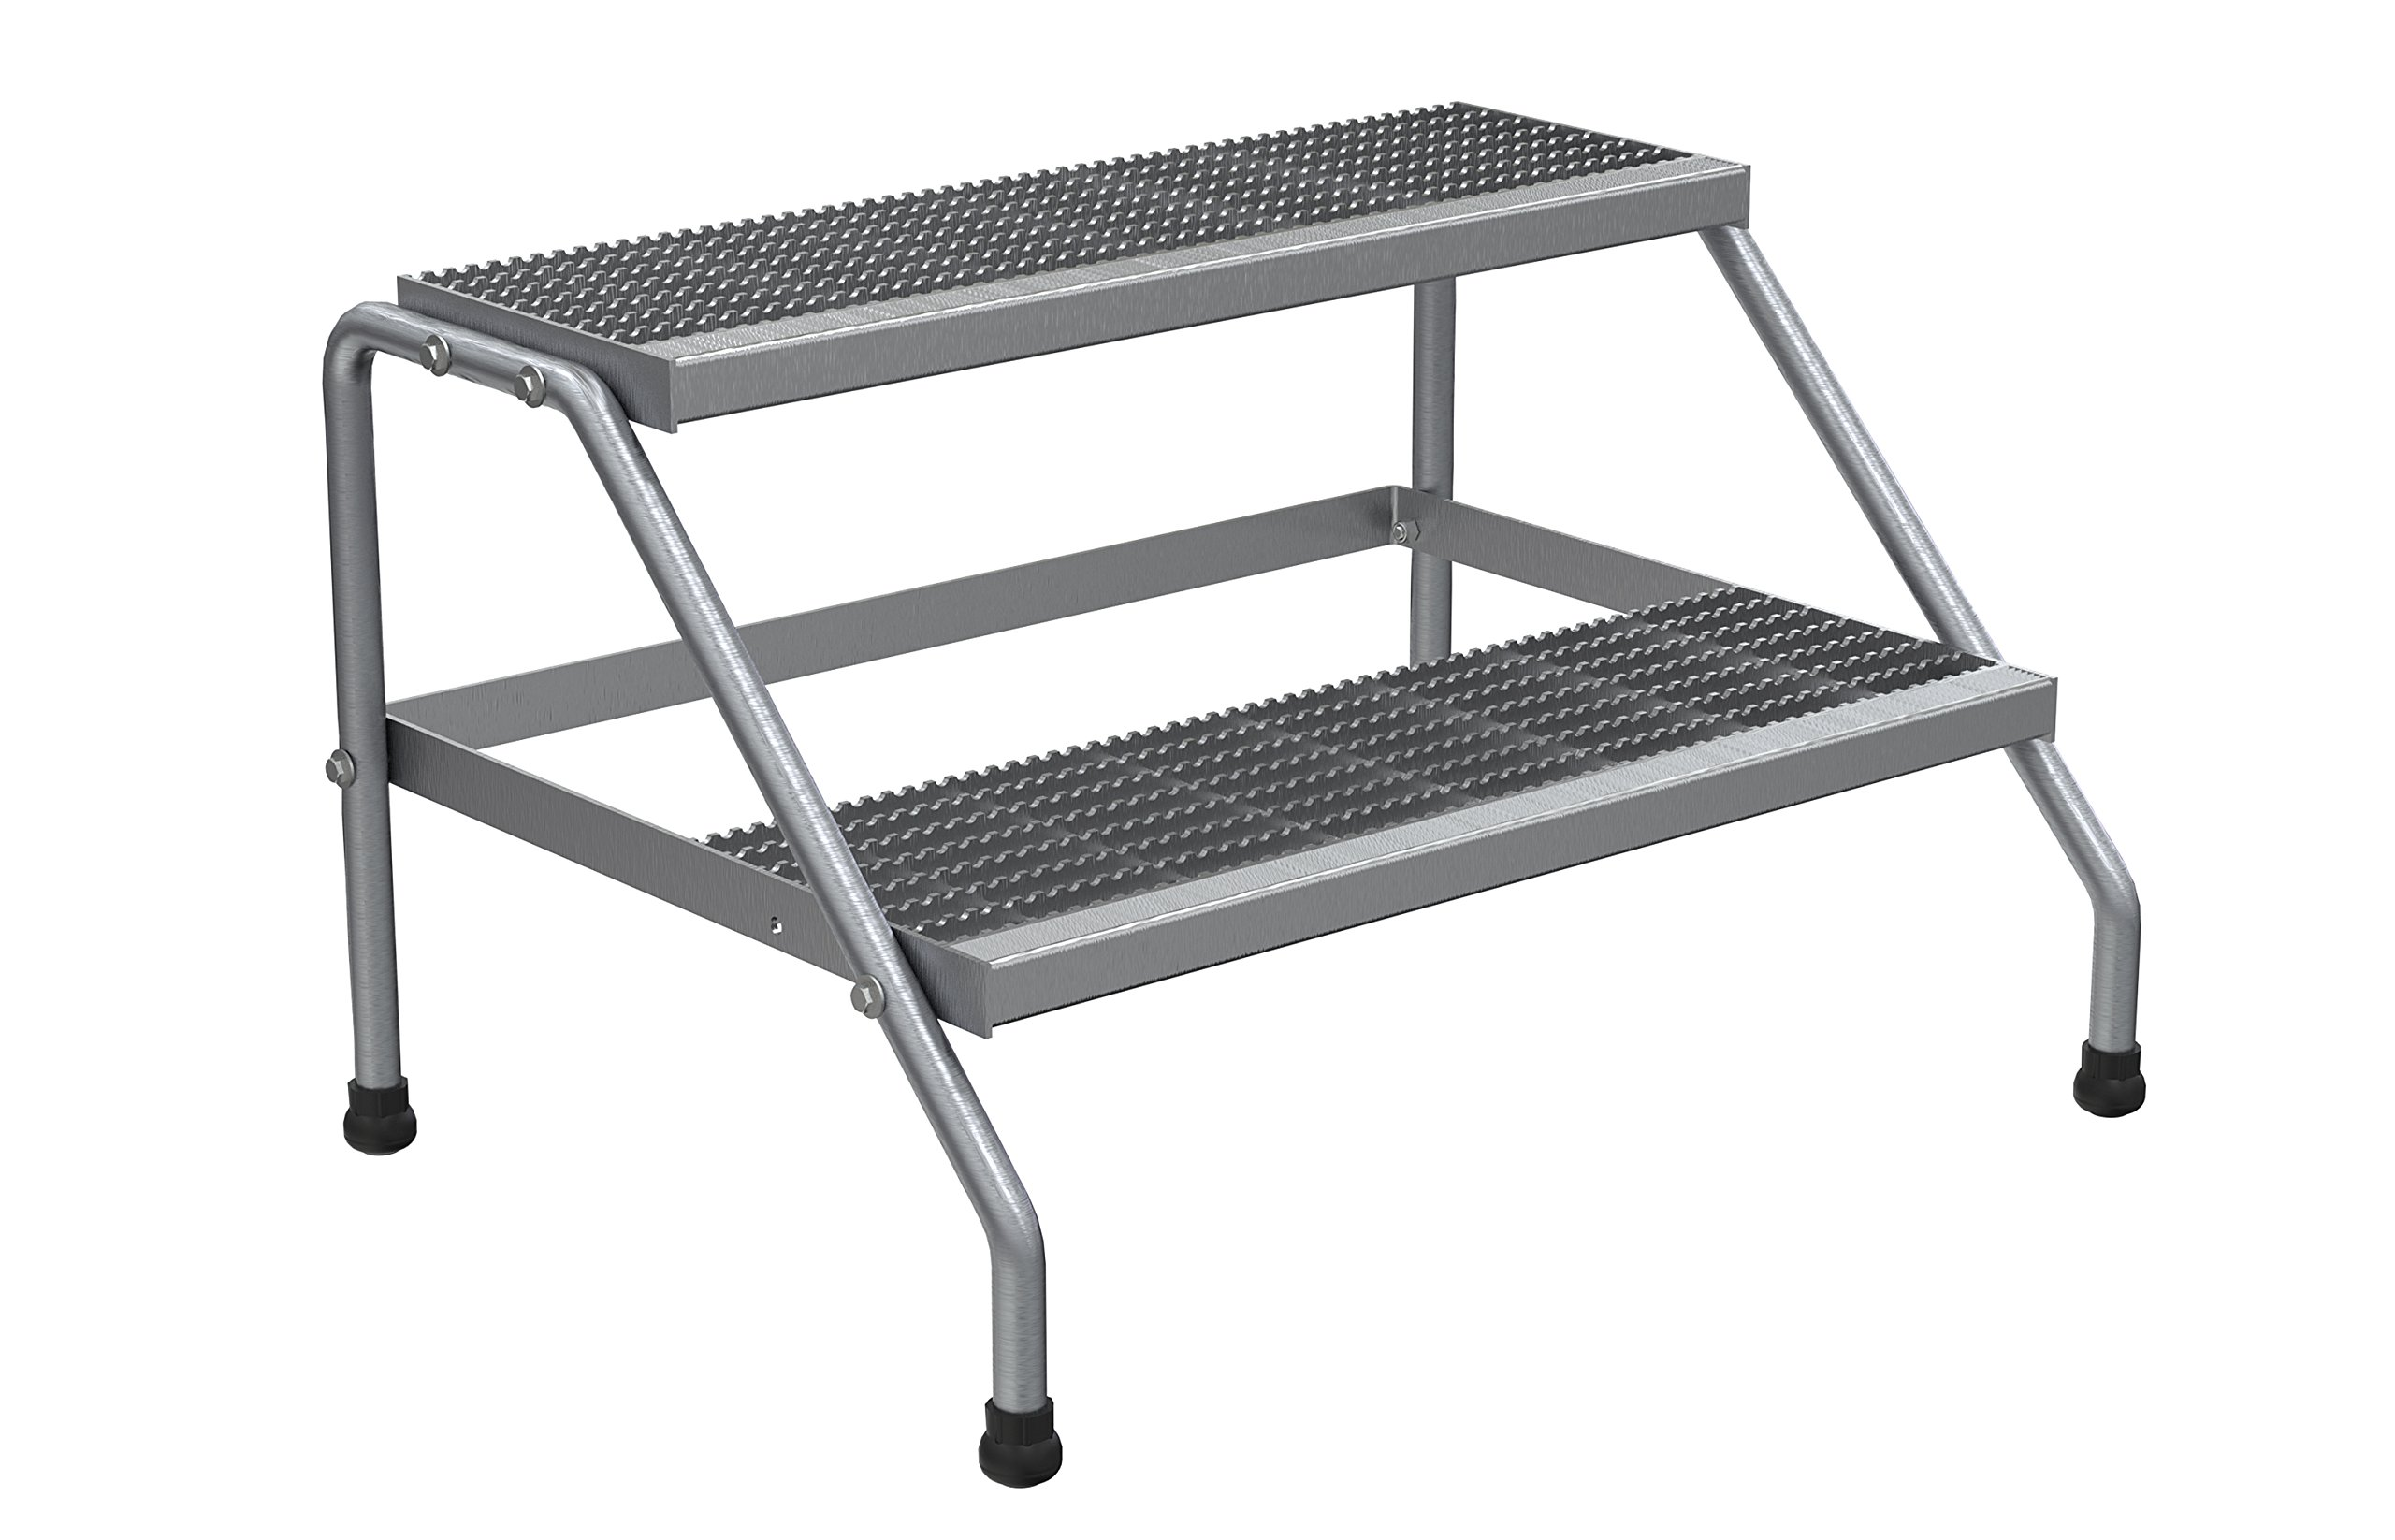 Vestil SSA-2W-KD Aluminum Wide 2-Step Stand - Knock Down, Silver